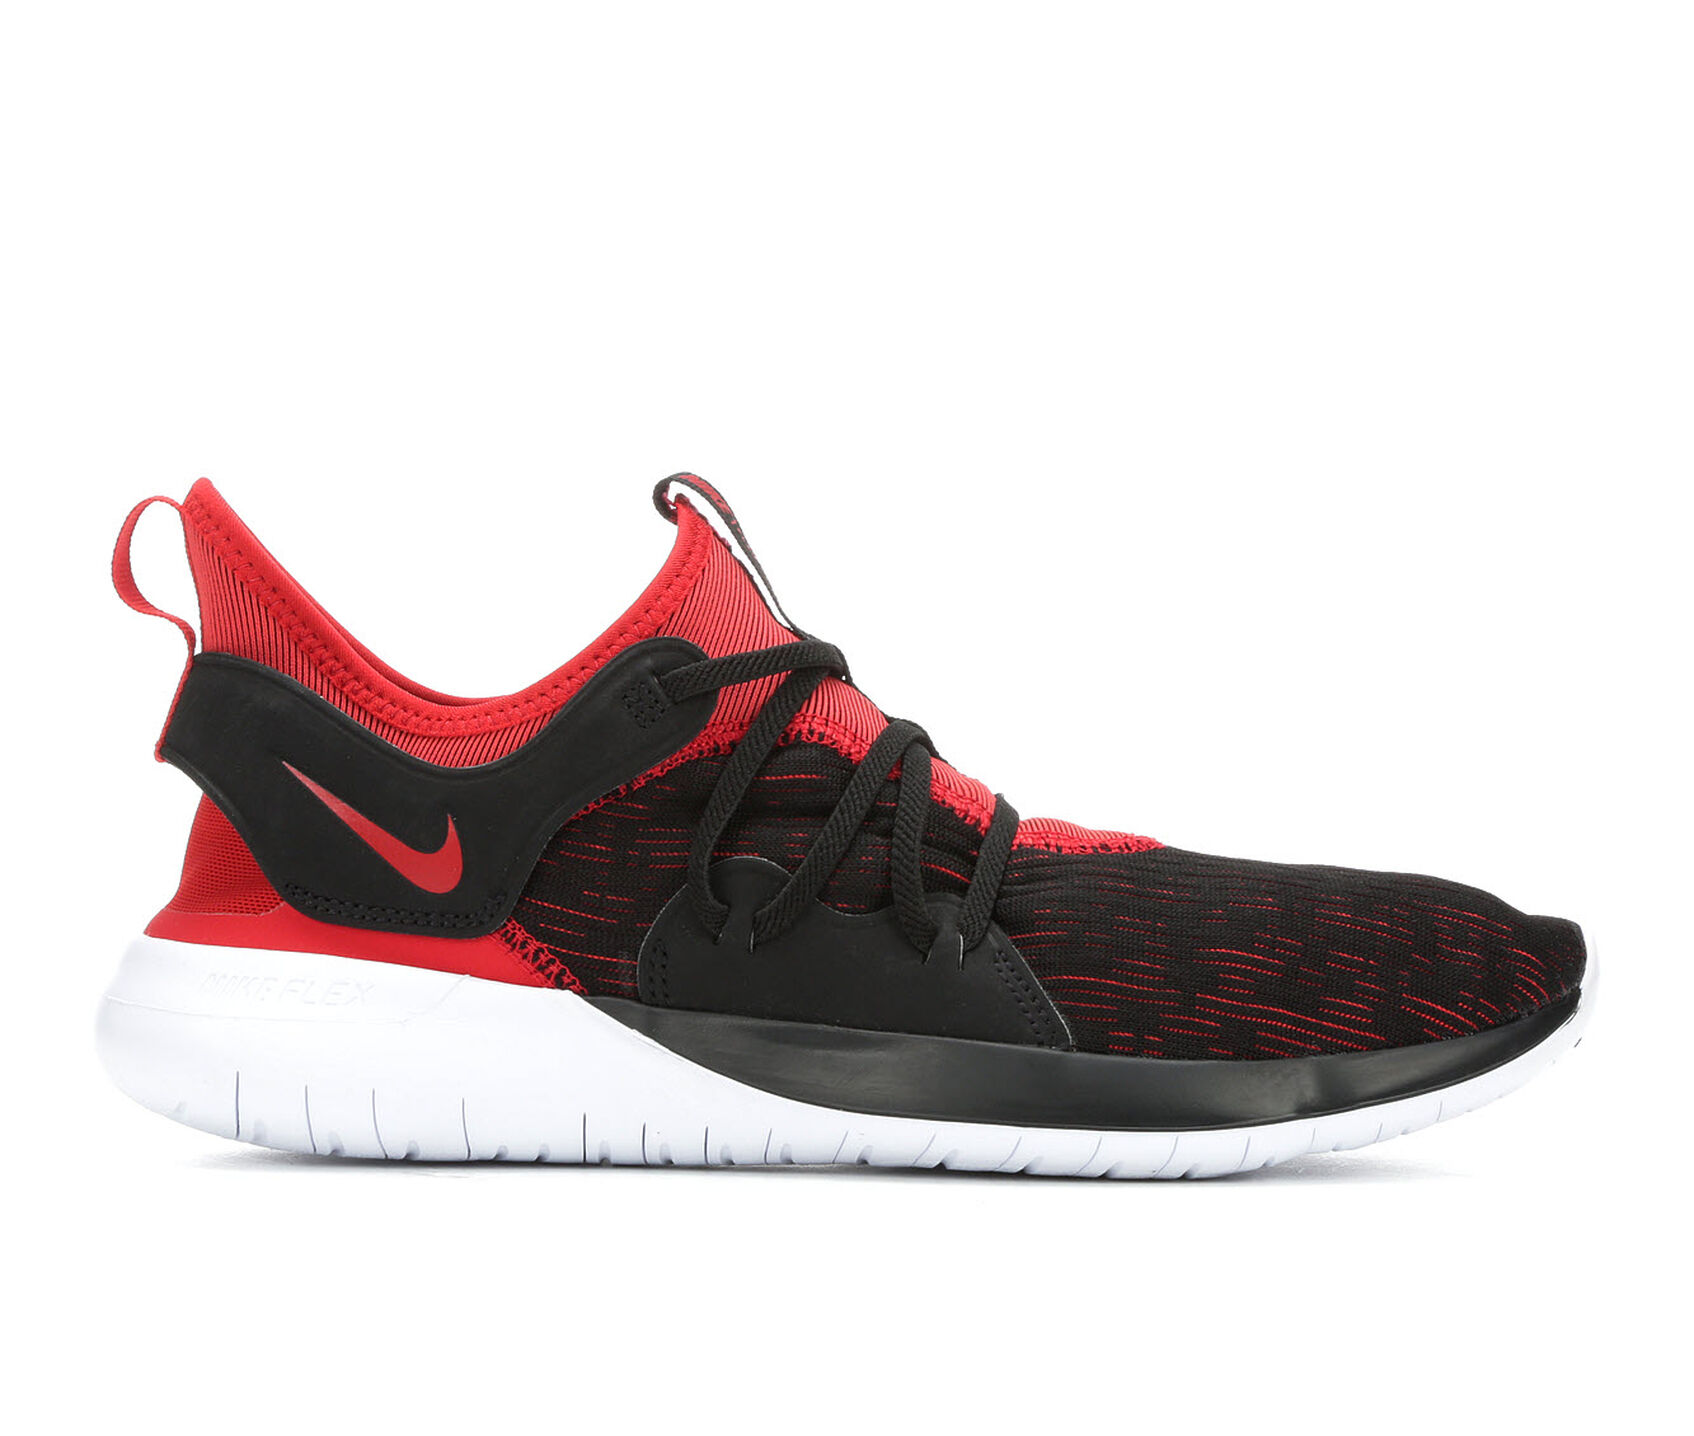 competitive price cheap sale cost charm Men's Nike Flex Contact 3 Running Shoes